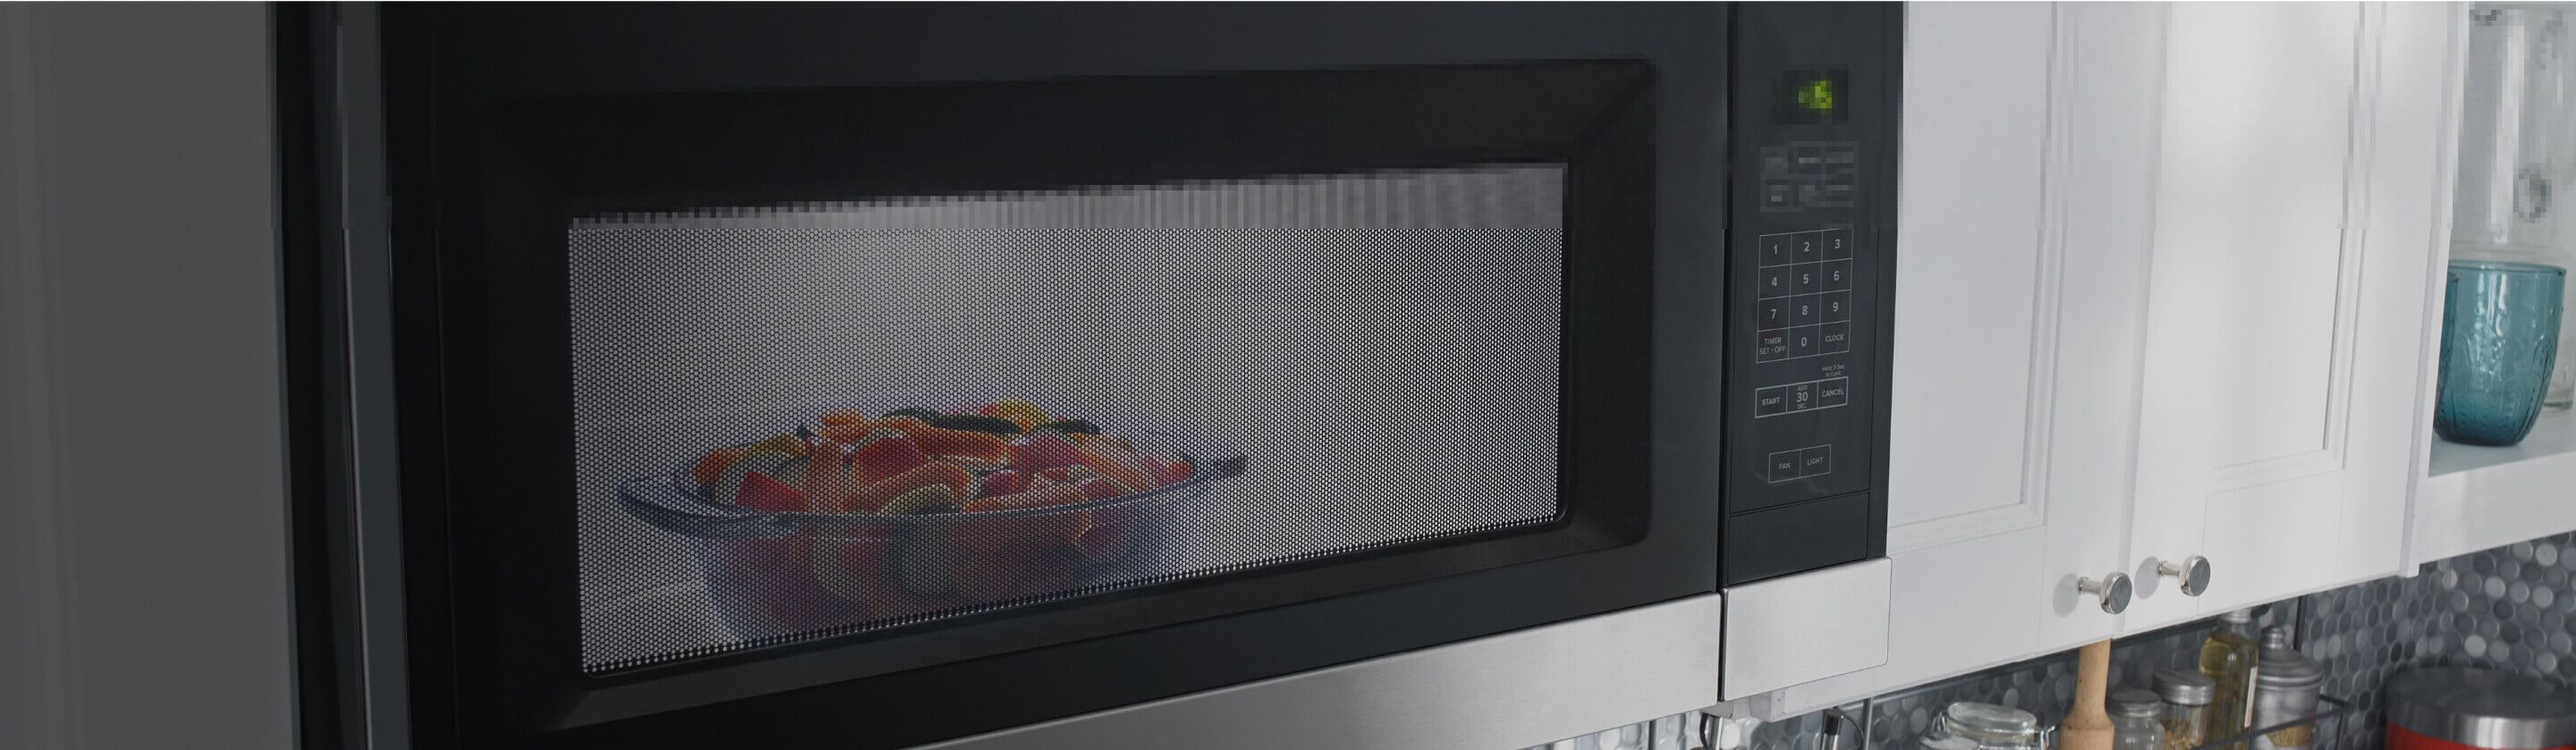 Food in Amana® microwave